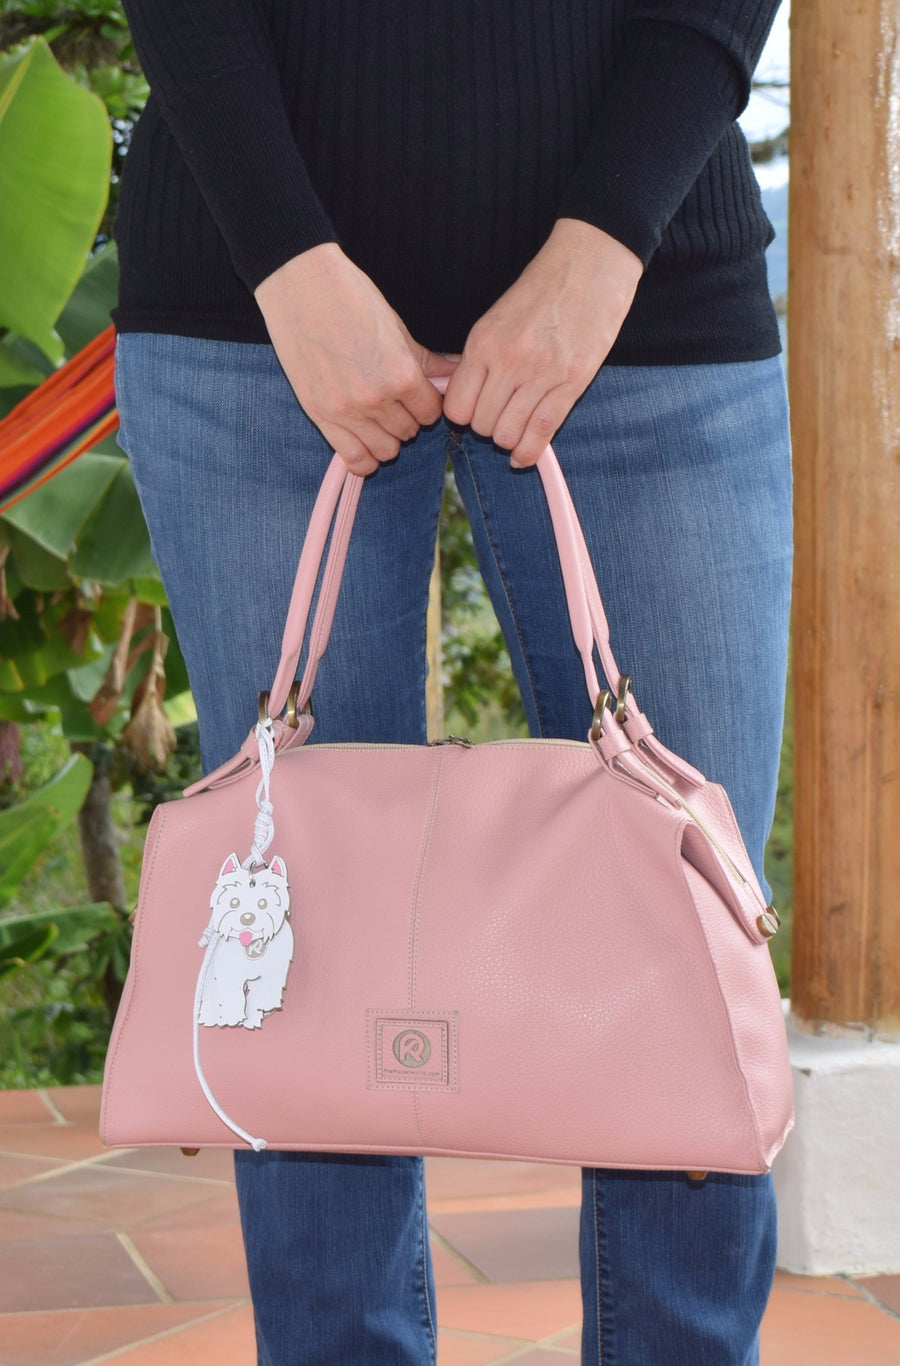 Pink Chameleon Duffle-Style, Satchel Handbag, Interchangeable Handles Included, 100% Leather - Handbag Charms handbag - Handbag TheMakerWorld TheMakerWorld